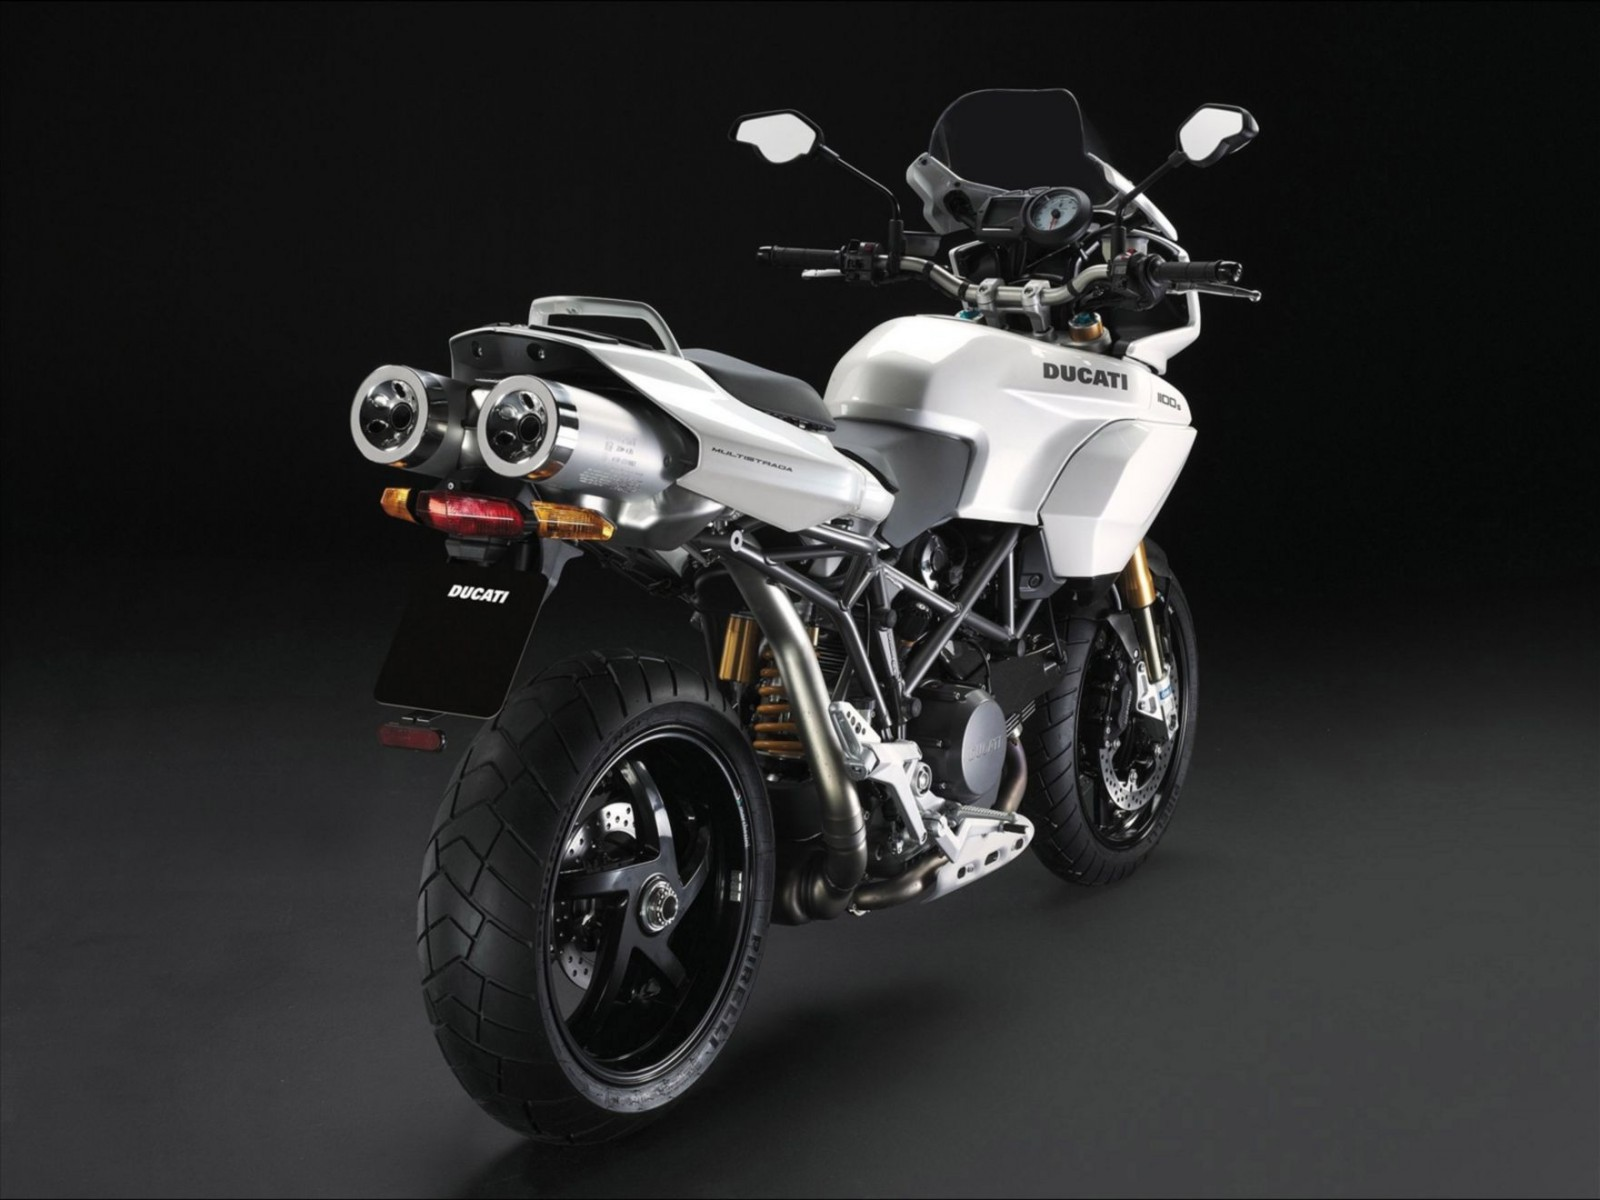 Ducati New Pearl White Livery Normal Wallpaper